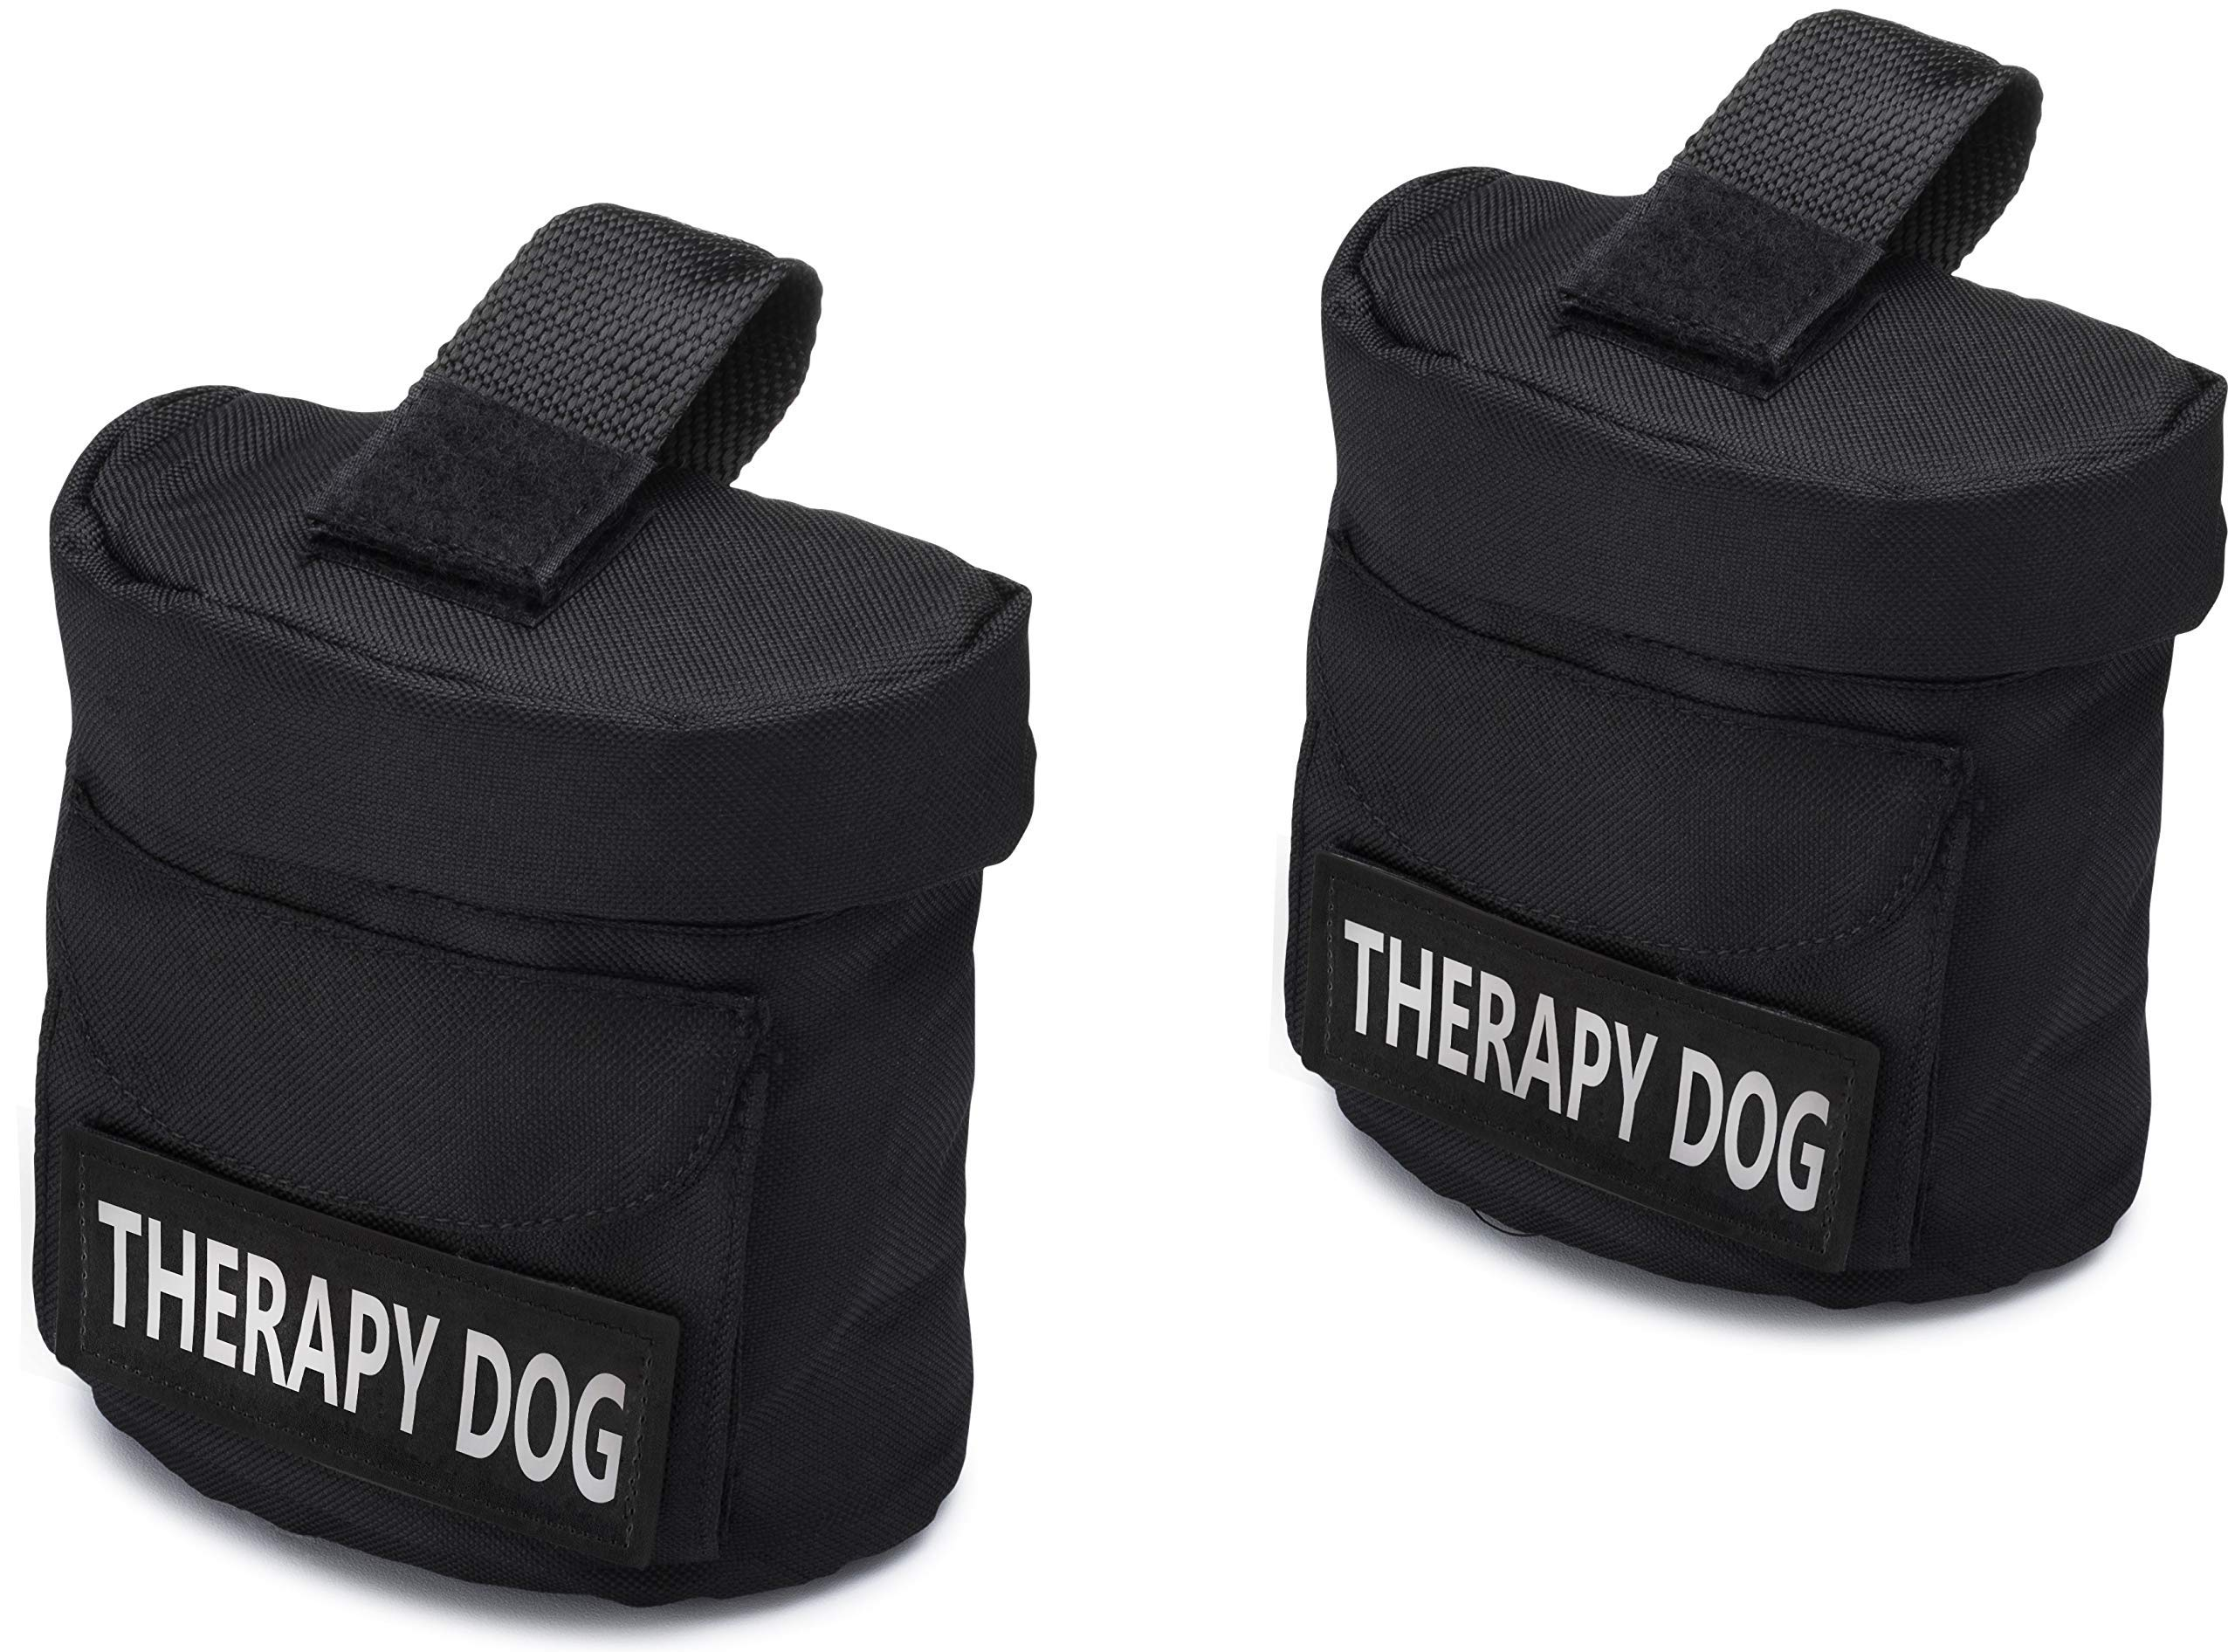 Therapy Dog Harness Vest Saddle Bags with ''THERAPY DOG'' Hook Patches - Therapy Dog Backpack Pouch for Therapy Dog and Therapy Dog in Training - Identifying Patch on Each SaddleBag (Therapy Dog) by Industrial Puppy